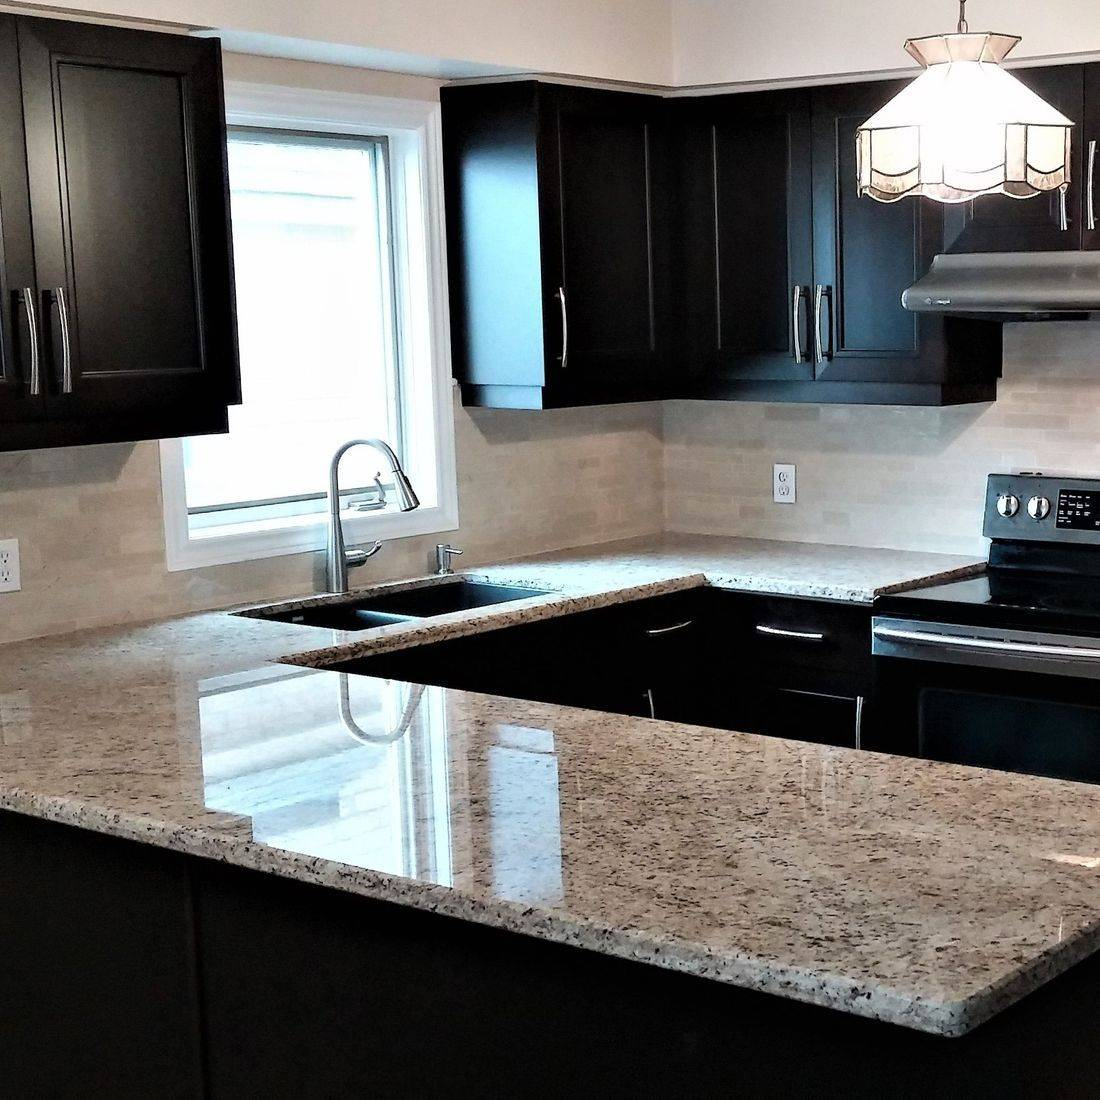 Sibra Kitchens Markham Toronto cambria quartz espresso maple cabinets